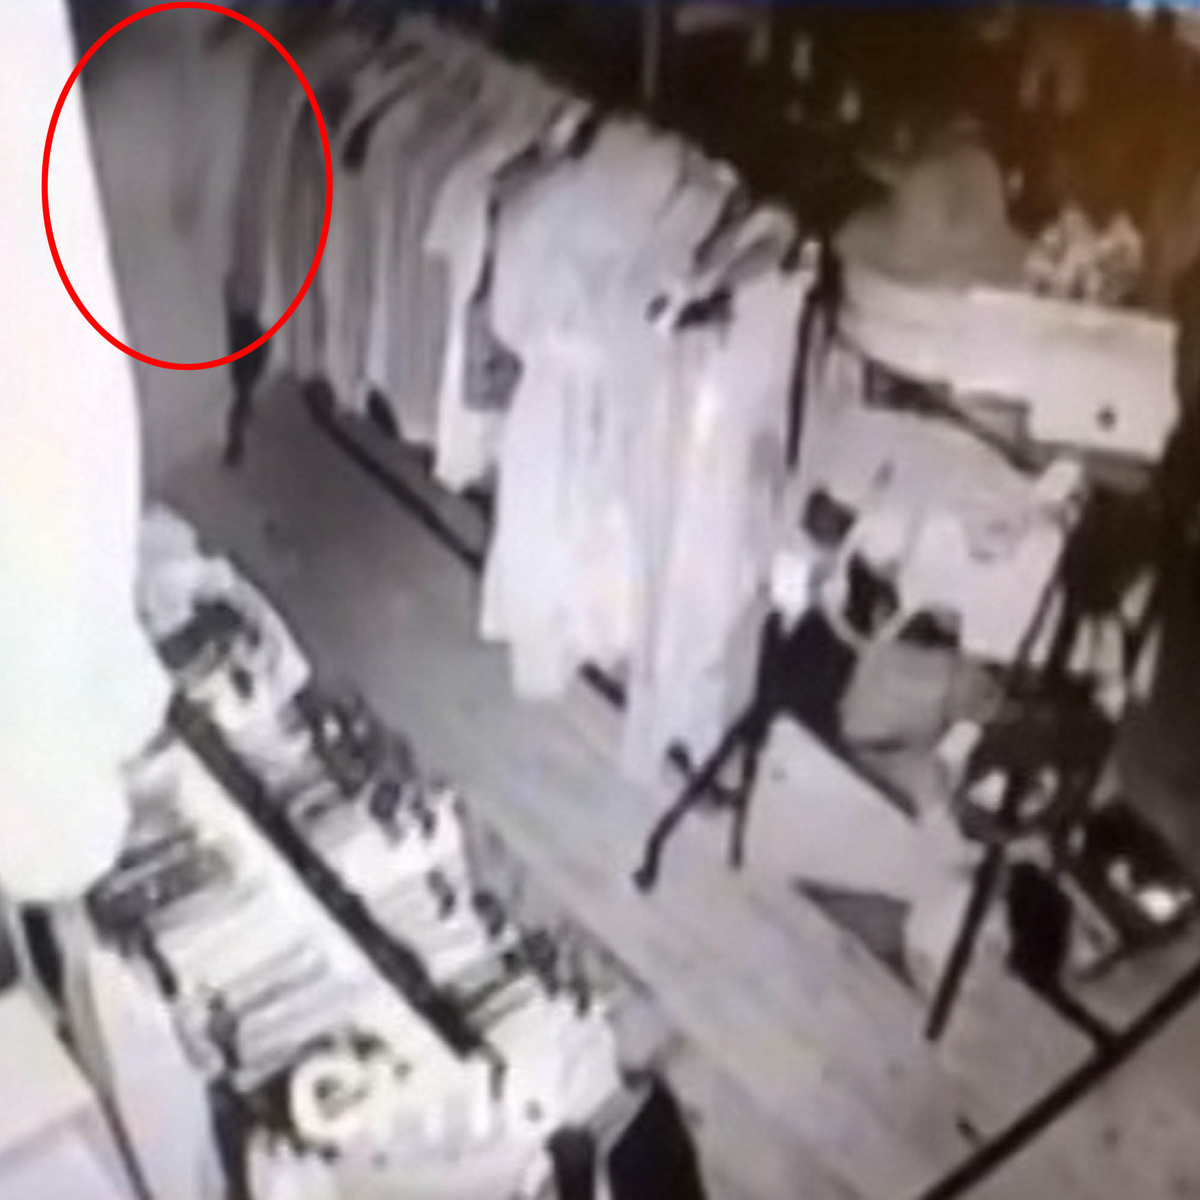 Creepy As F*ck CCTV Footage Shows Ghost Wandering Around Vintage Store SWNS SHOP GHOST 02A